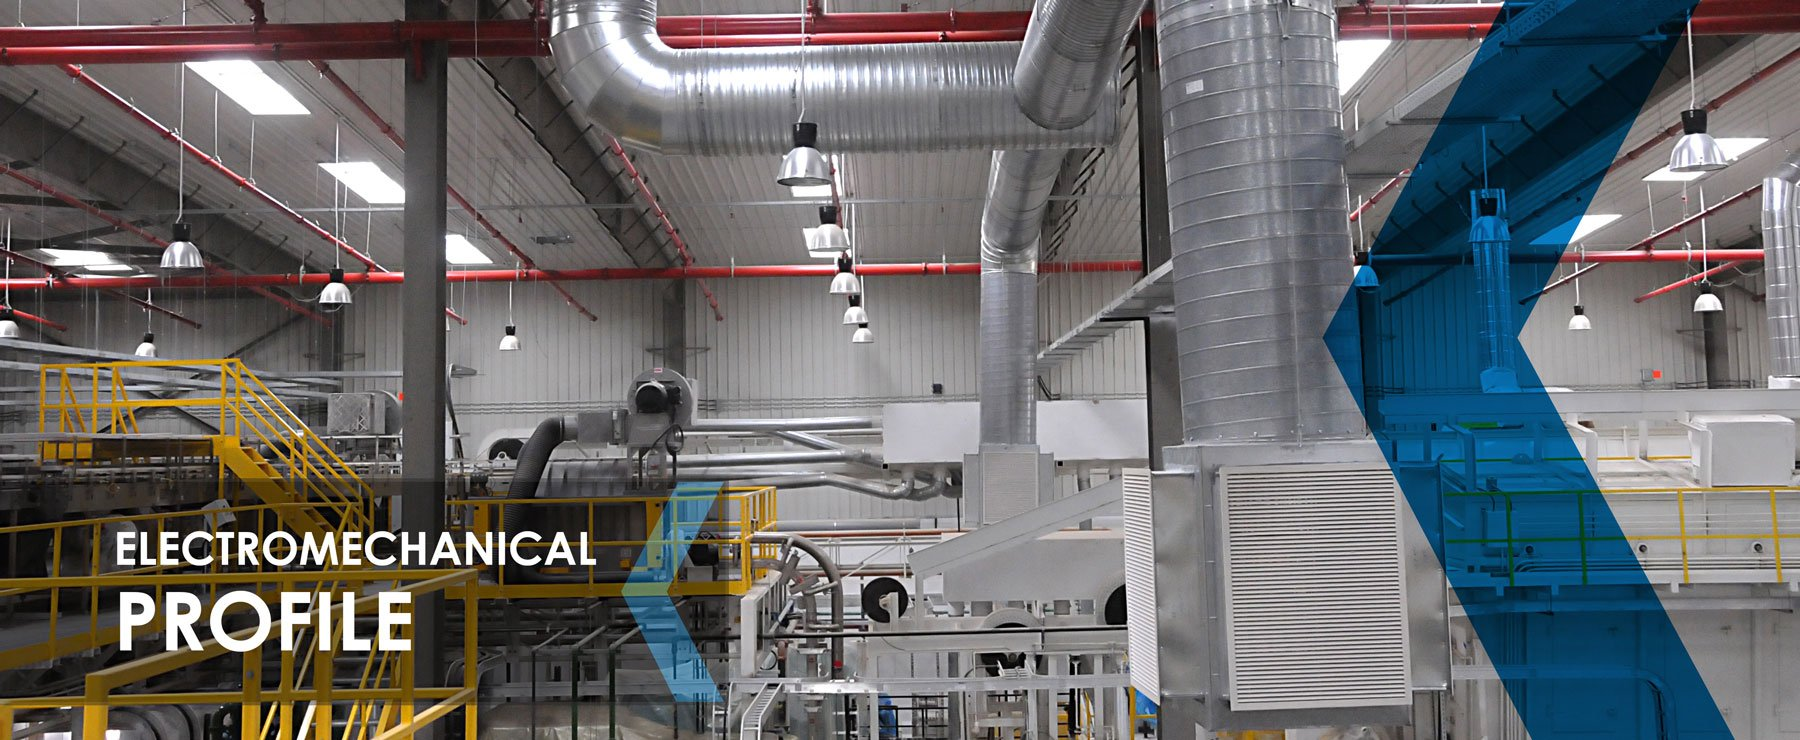 electromechanical services in Egypt, Electromechanical Contracting, HVAC Systems